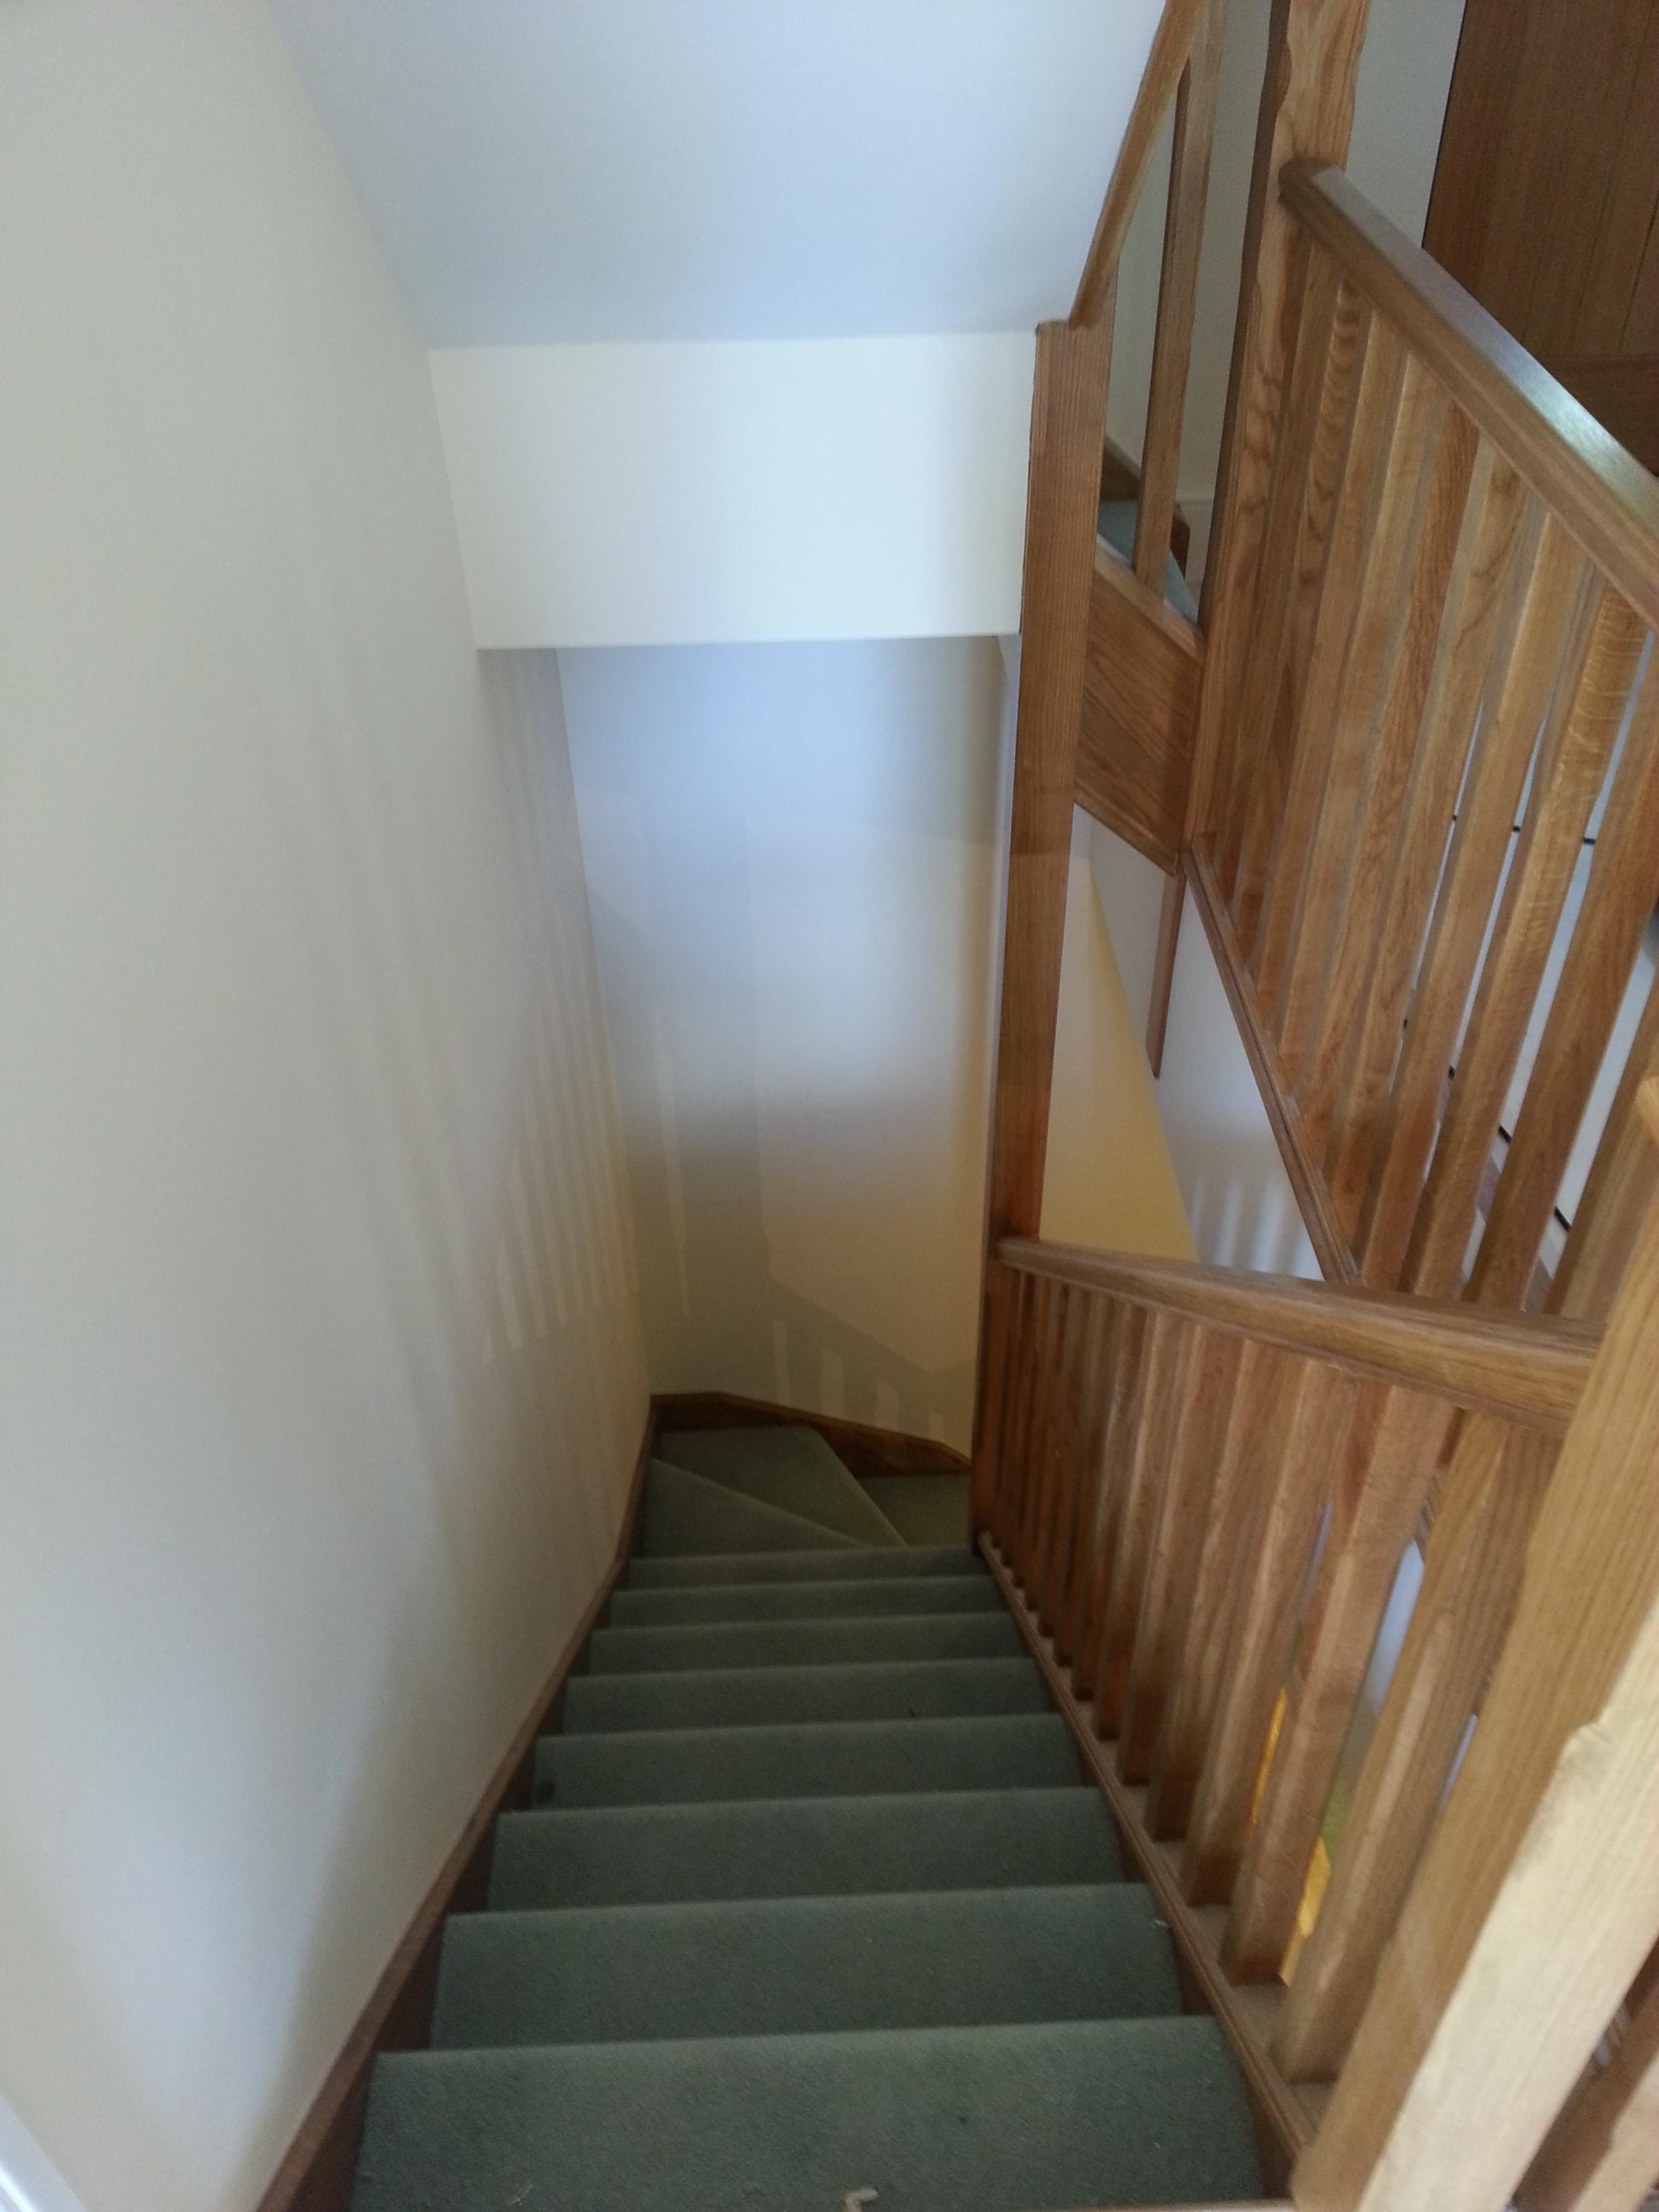 Internal stair case